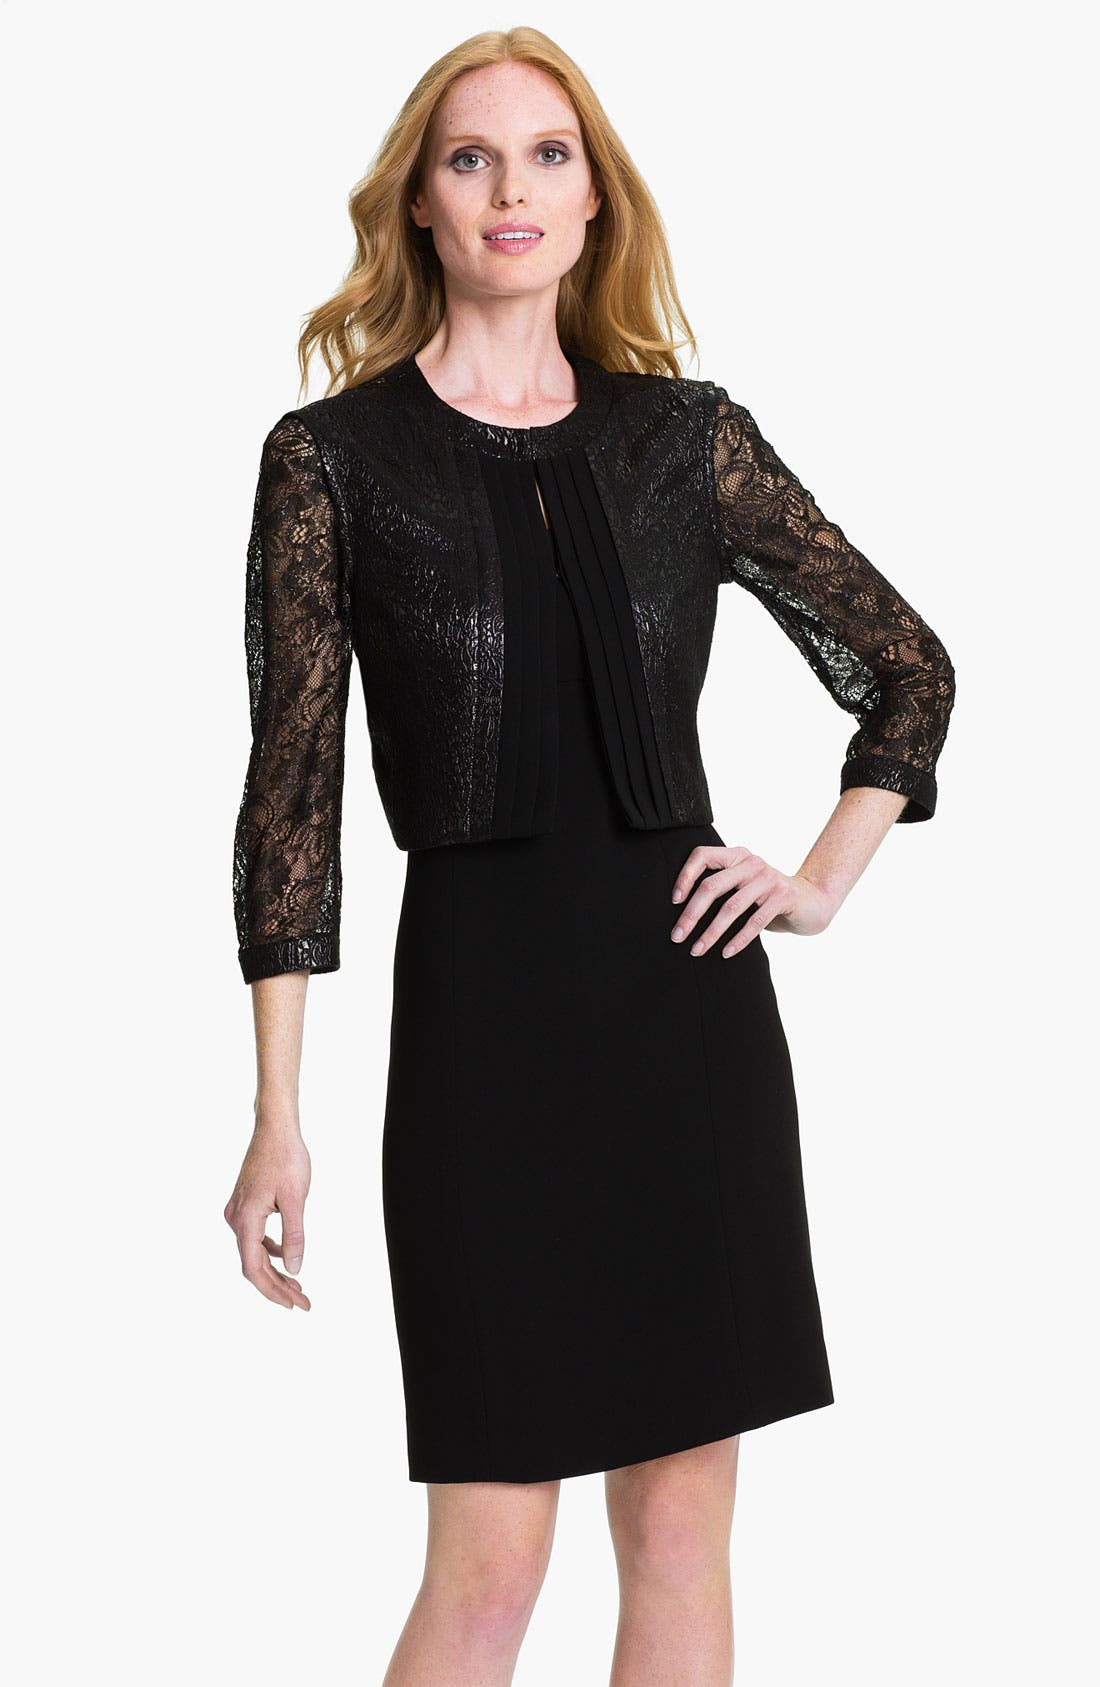 Alternate Image 1 Selected - Tahari Sleeveless Sheath Dress & Metallic Lace Jacket